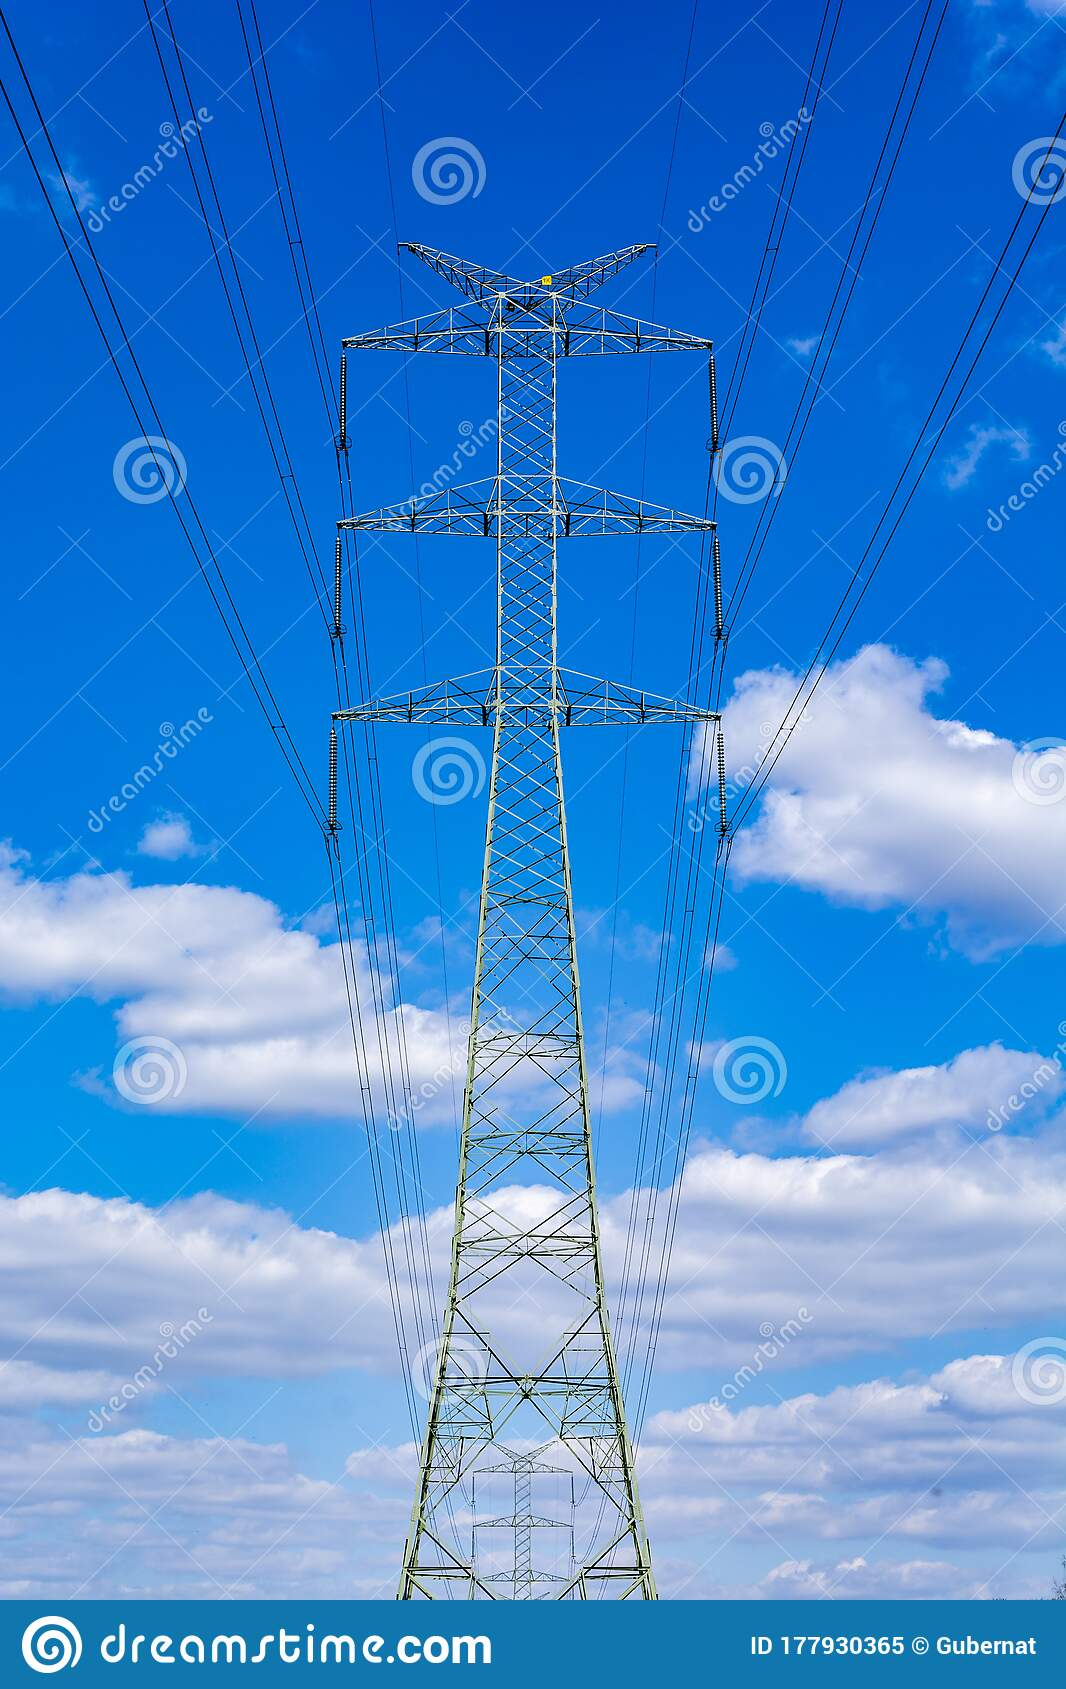 Electric Power Transmission Power Line Pole High Power Electrical Transmission Tower Against The Blue Sky And White Billowing Stock Image Image Of Engineering Distribution 177930365